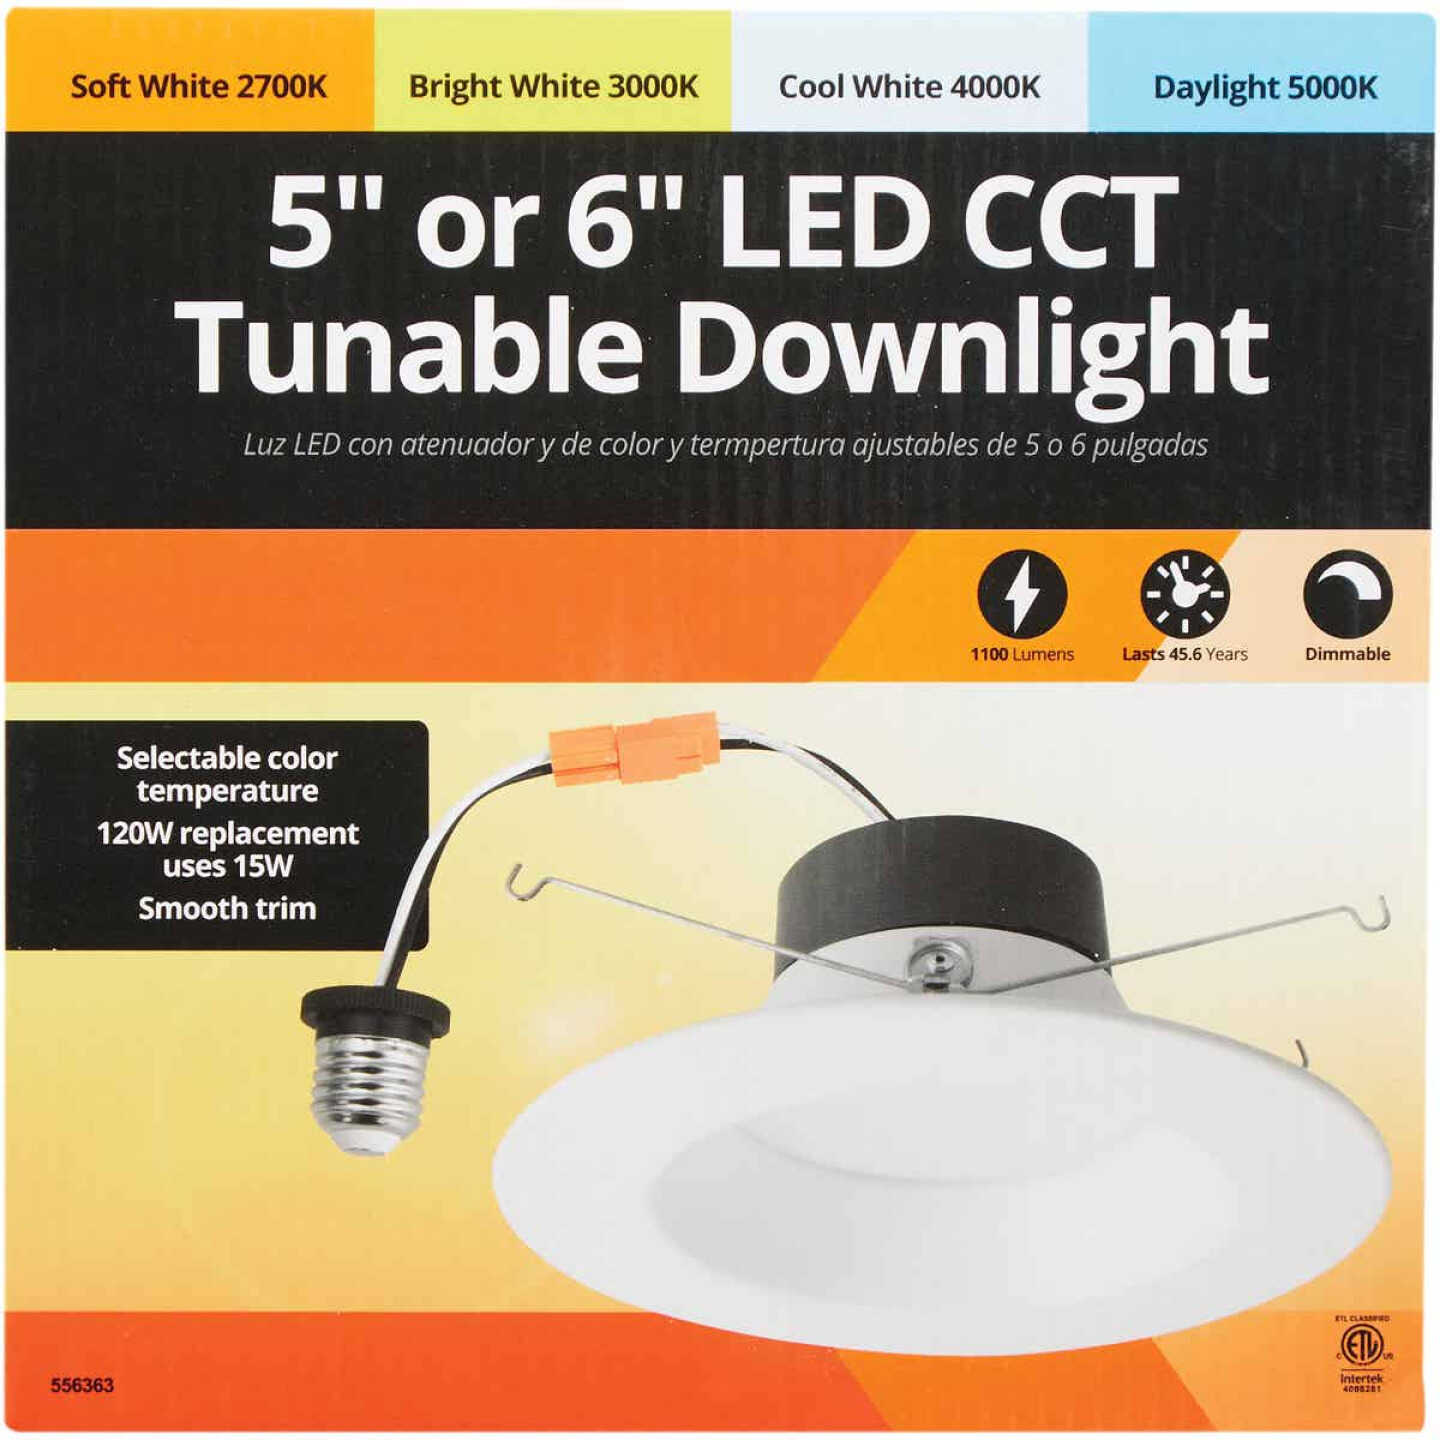 5 In./6 In. Retrofit IC Rated White LED CCT Tunable Down Light with Smooth Trim Image 2